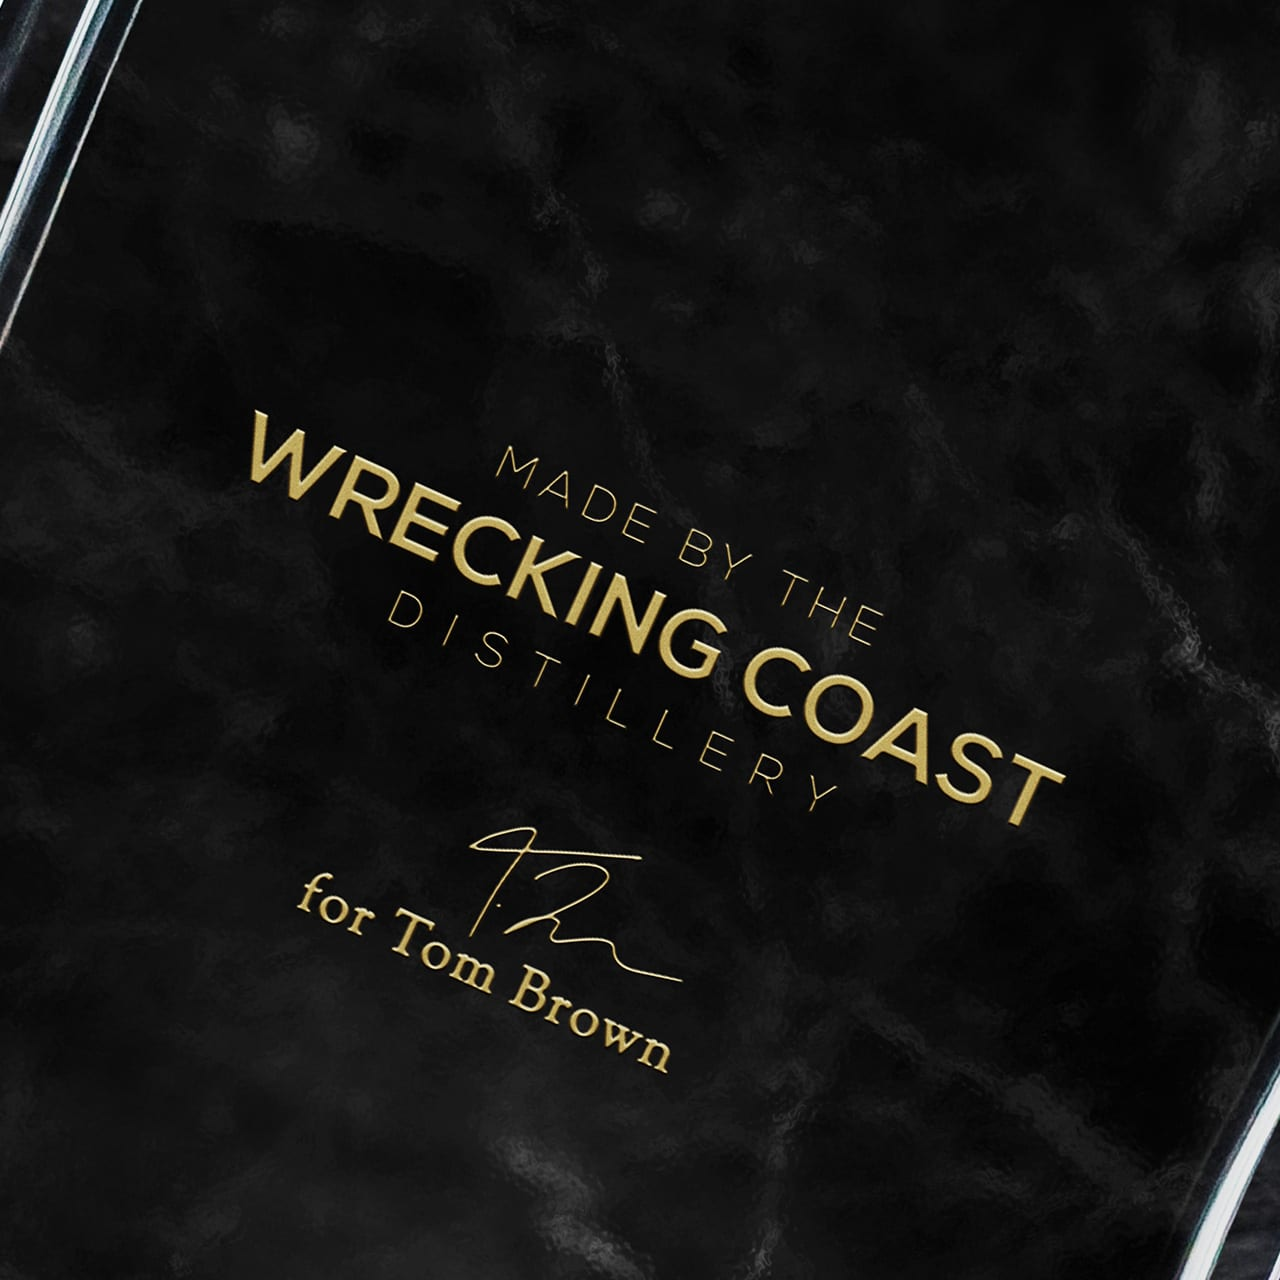 A close-up shot of gin bottle design reading 'Made by the wrecking coast distillery for Tom Brown'